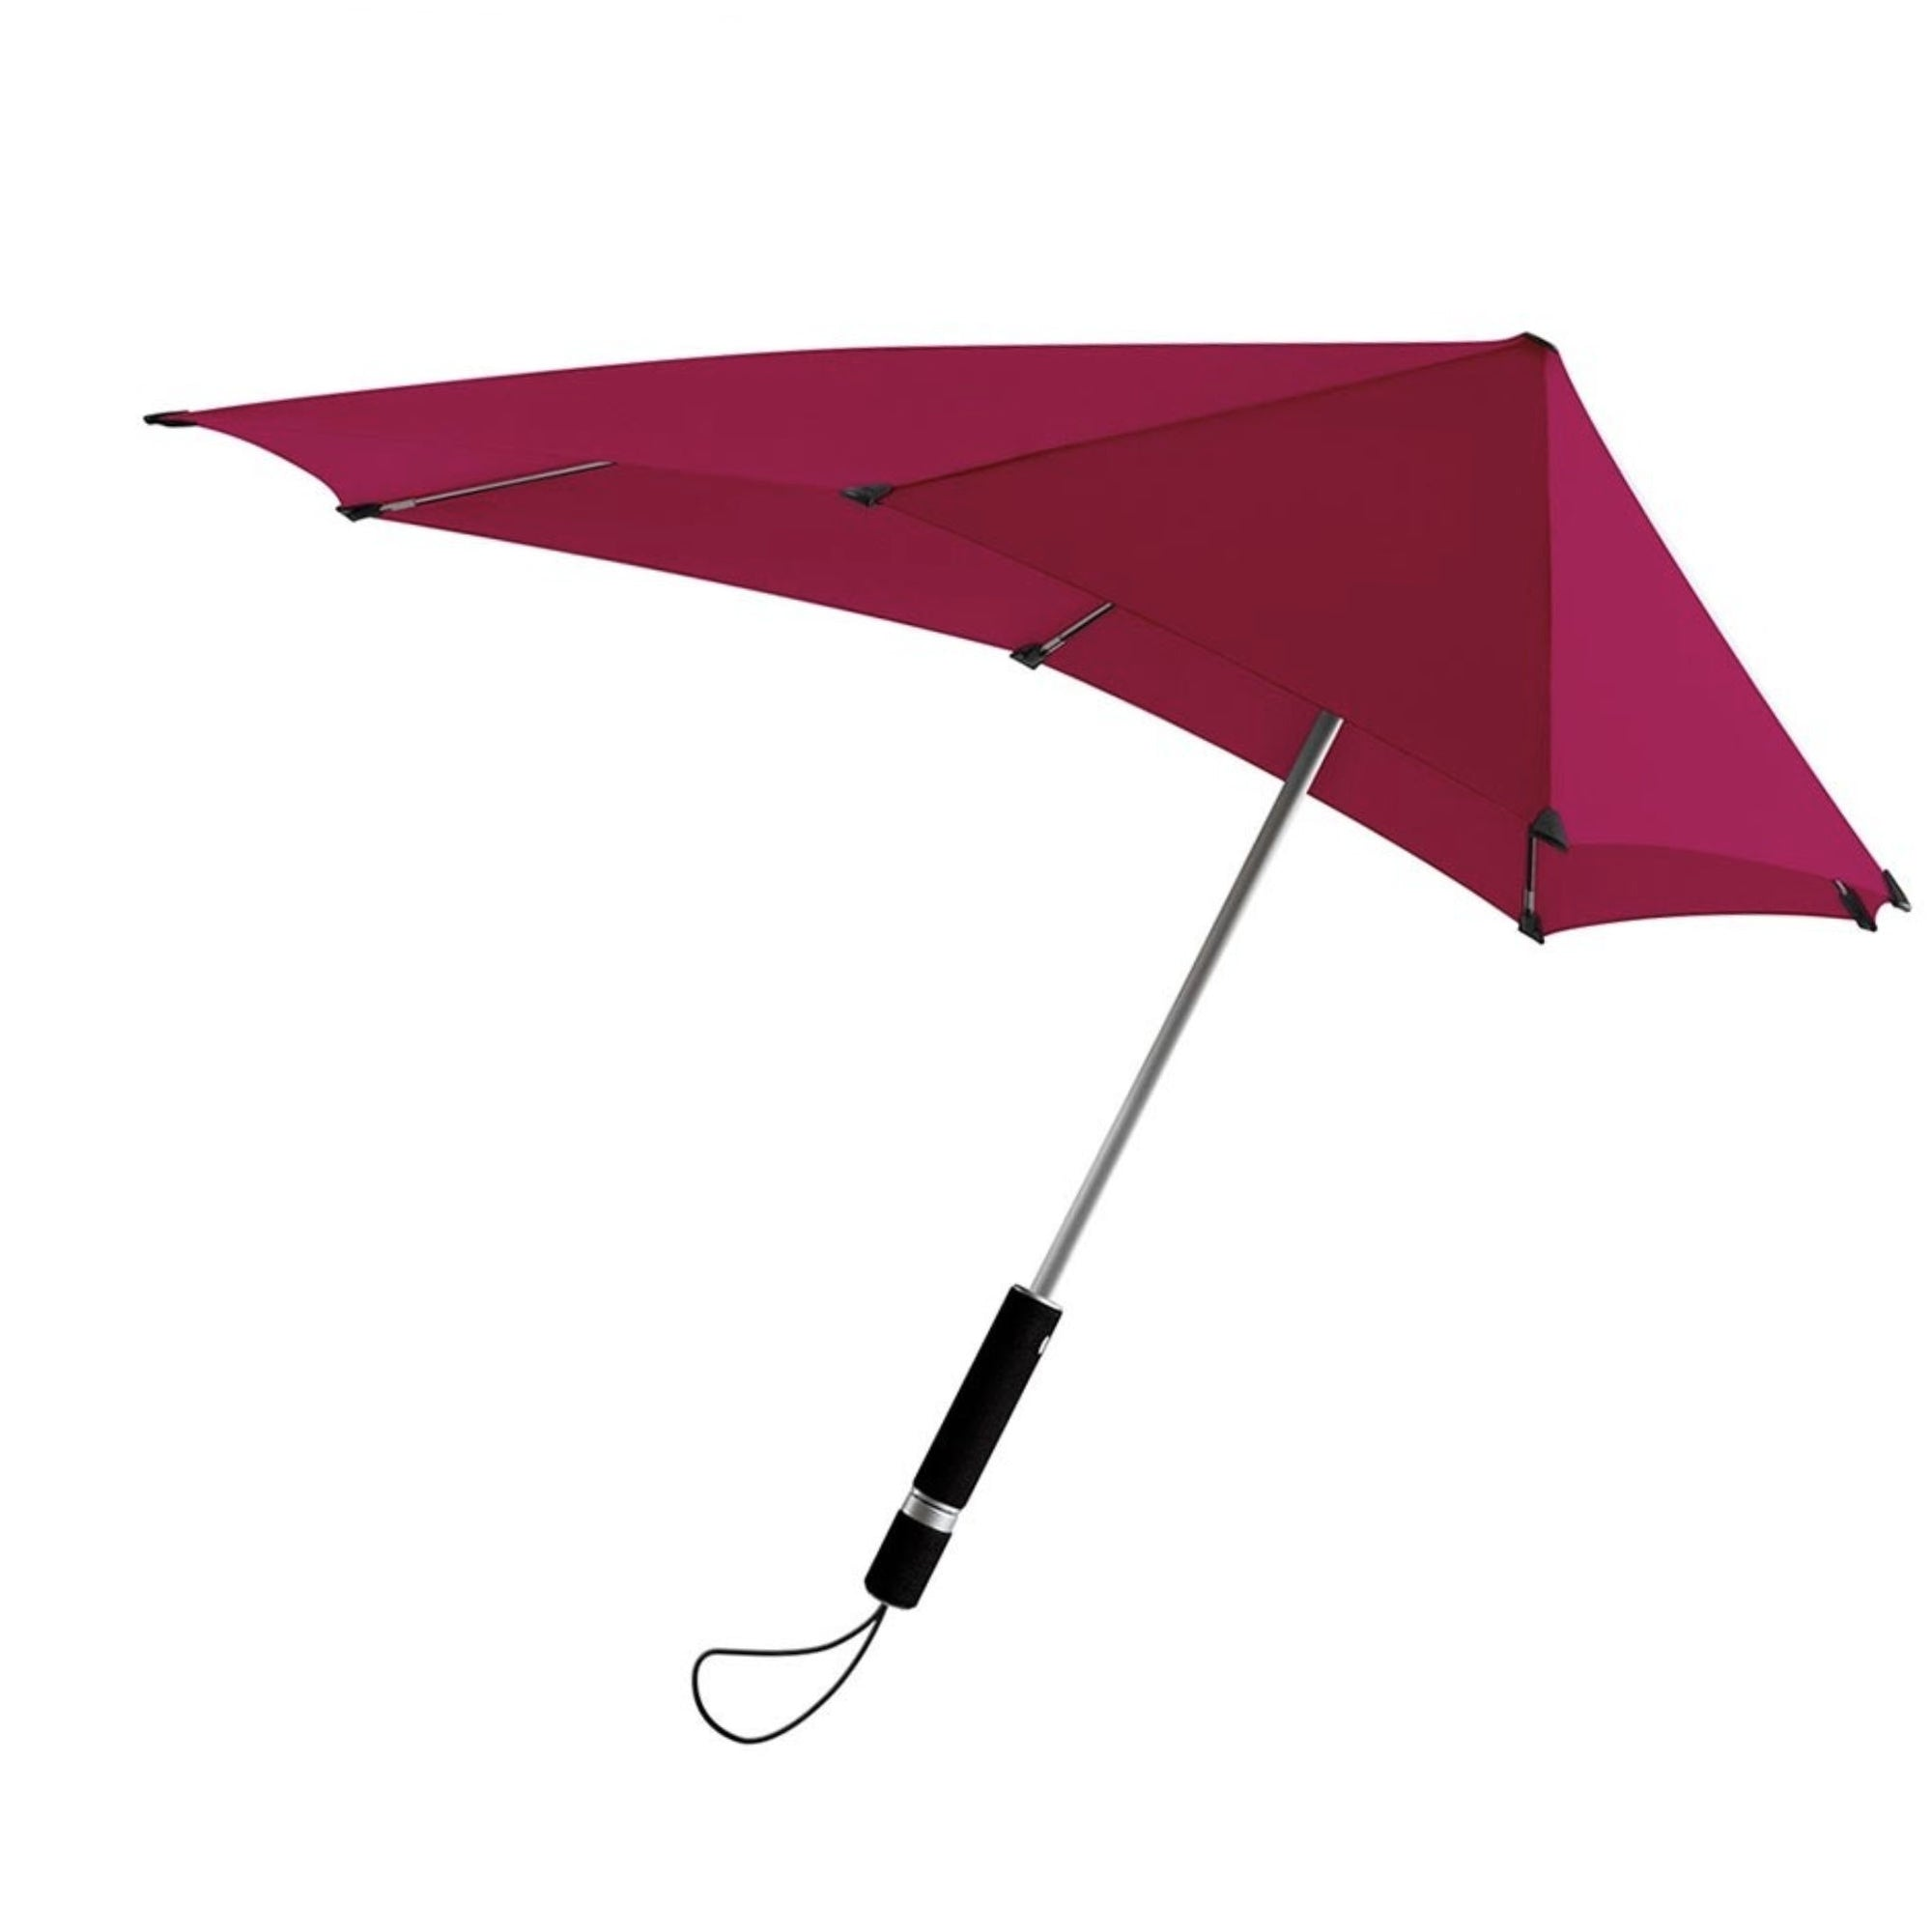 Senz° Original storm umbrella, paint pink